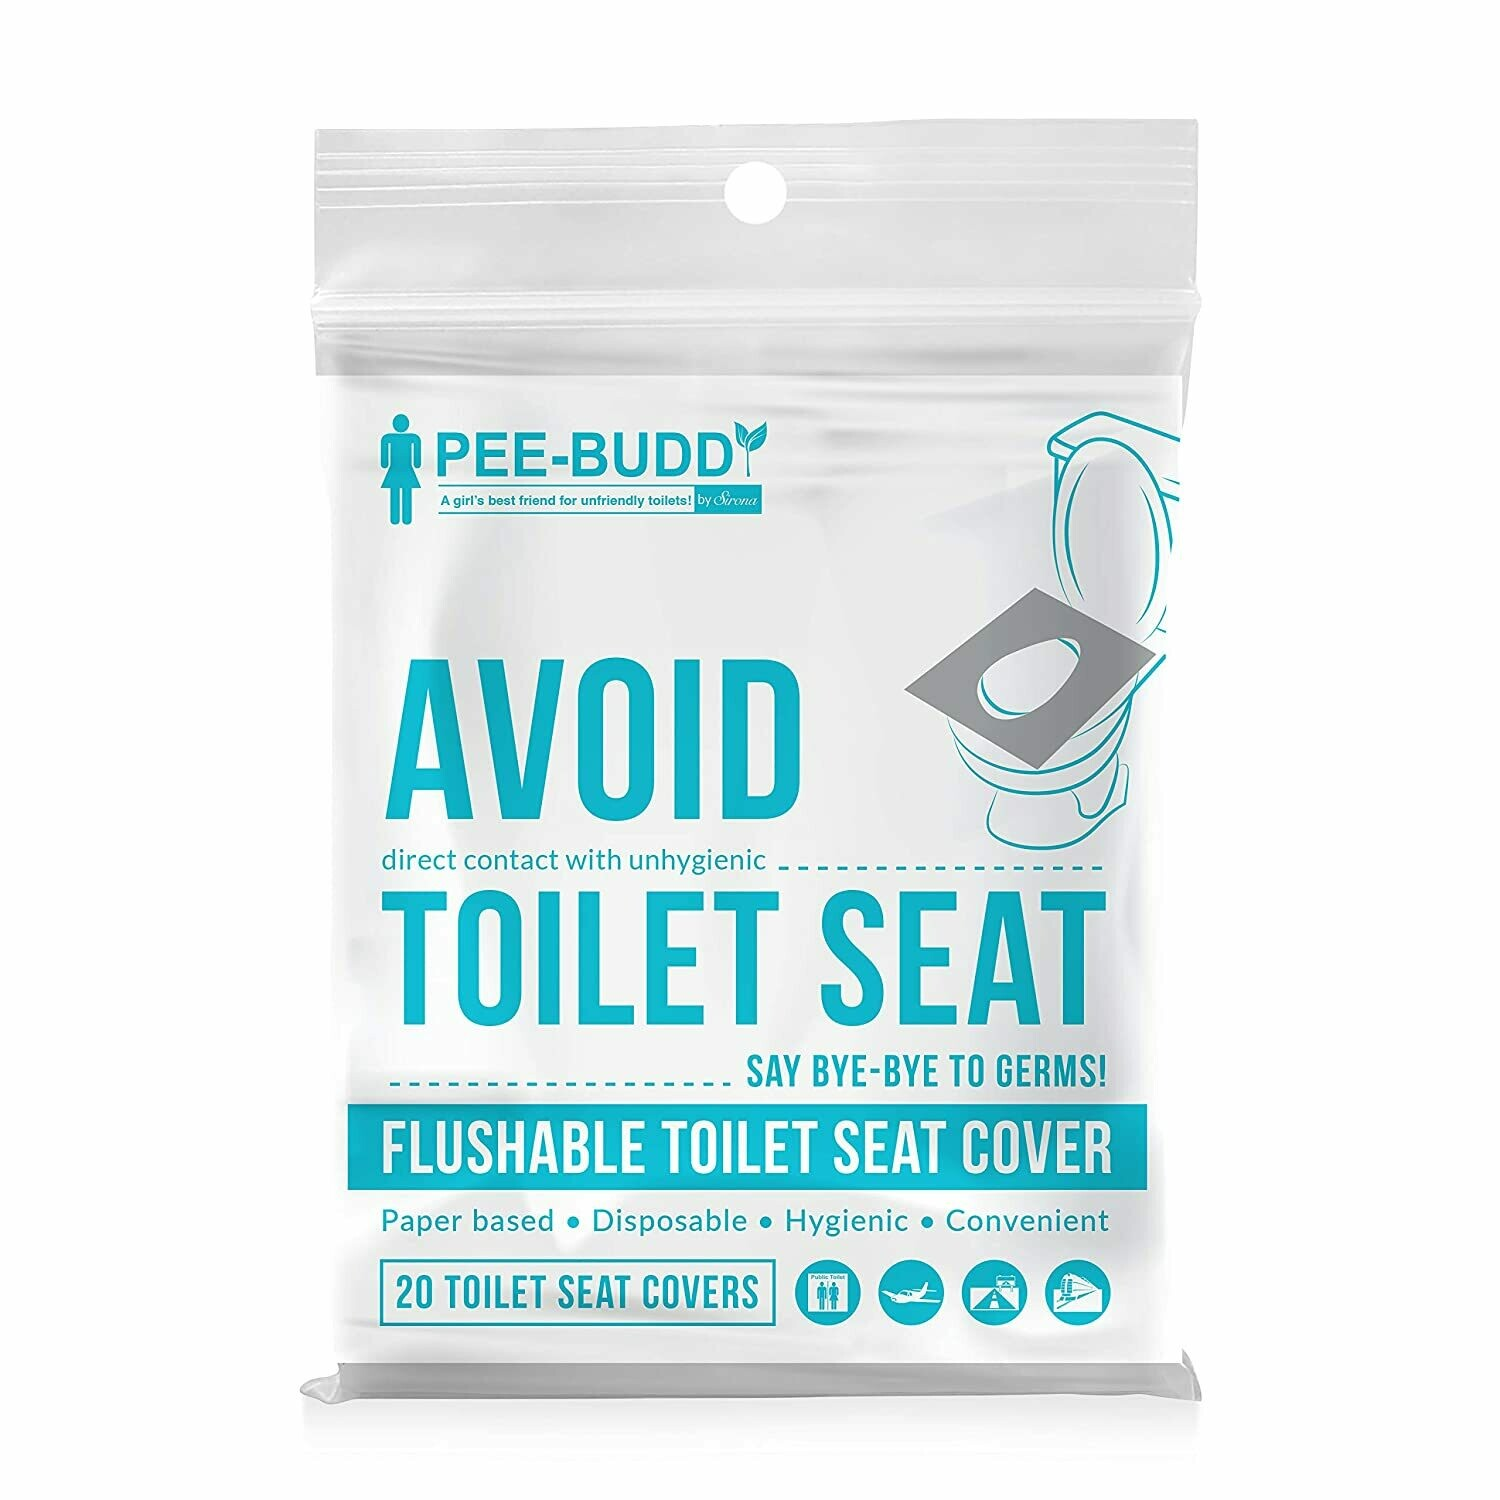 PeeBuddy Disposable Paper Toilet Seat Covers - 100 Sheets (Pack of 5), to Avoid Direct Contact with Unhygienic Seats